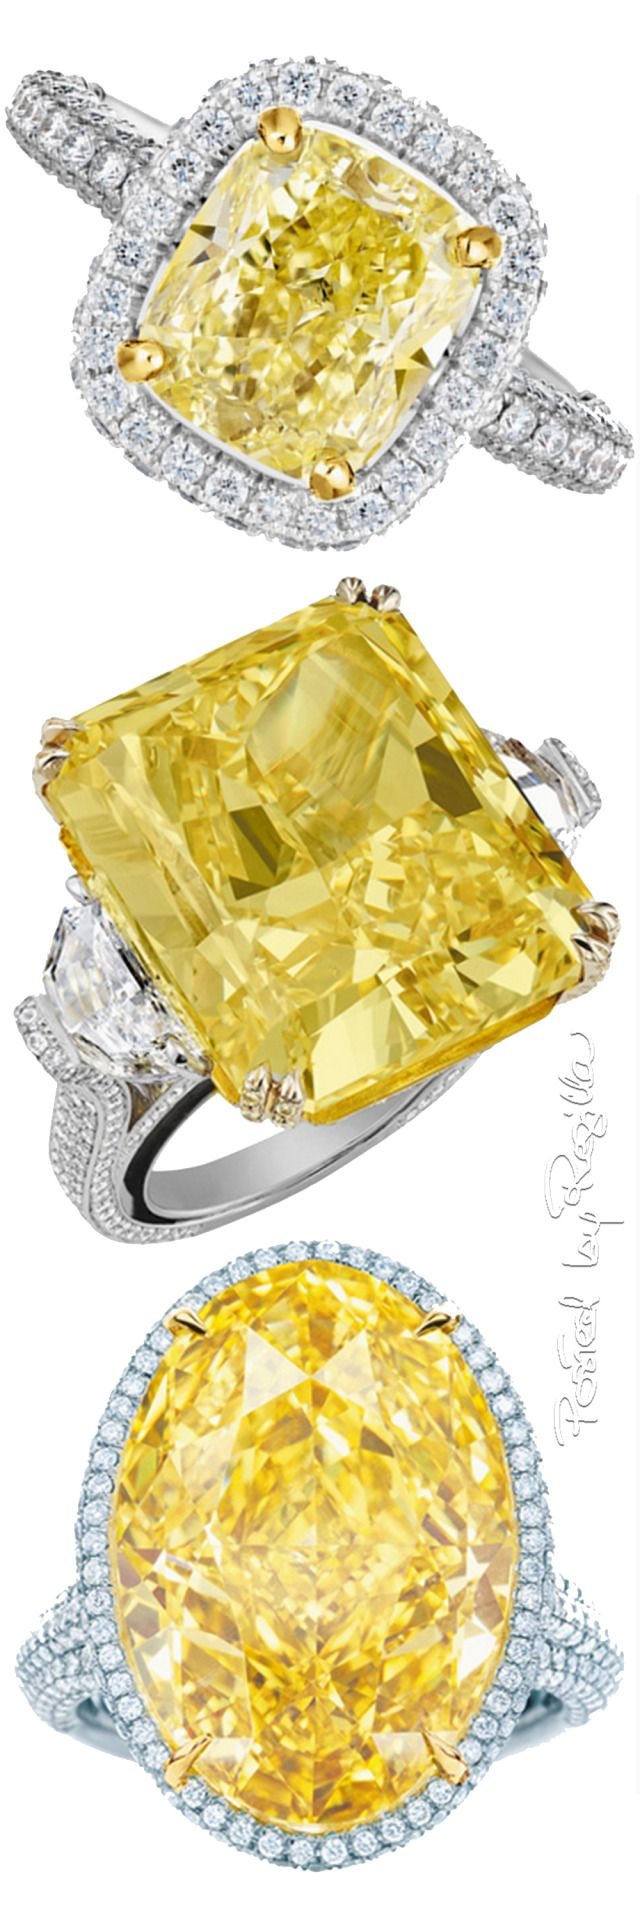 Regilla from the top de beers chopard tiffany completos